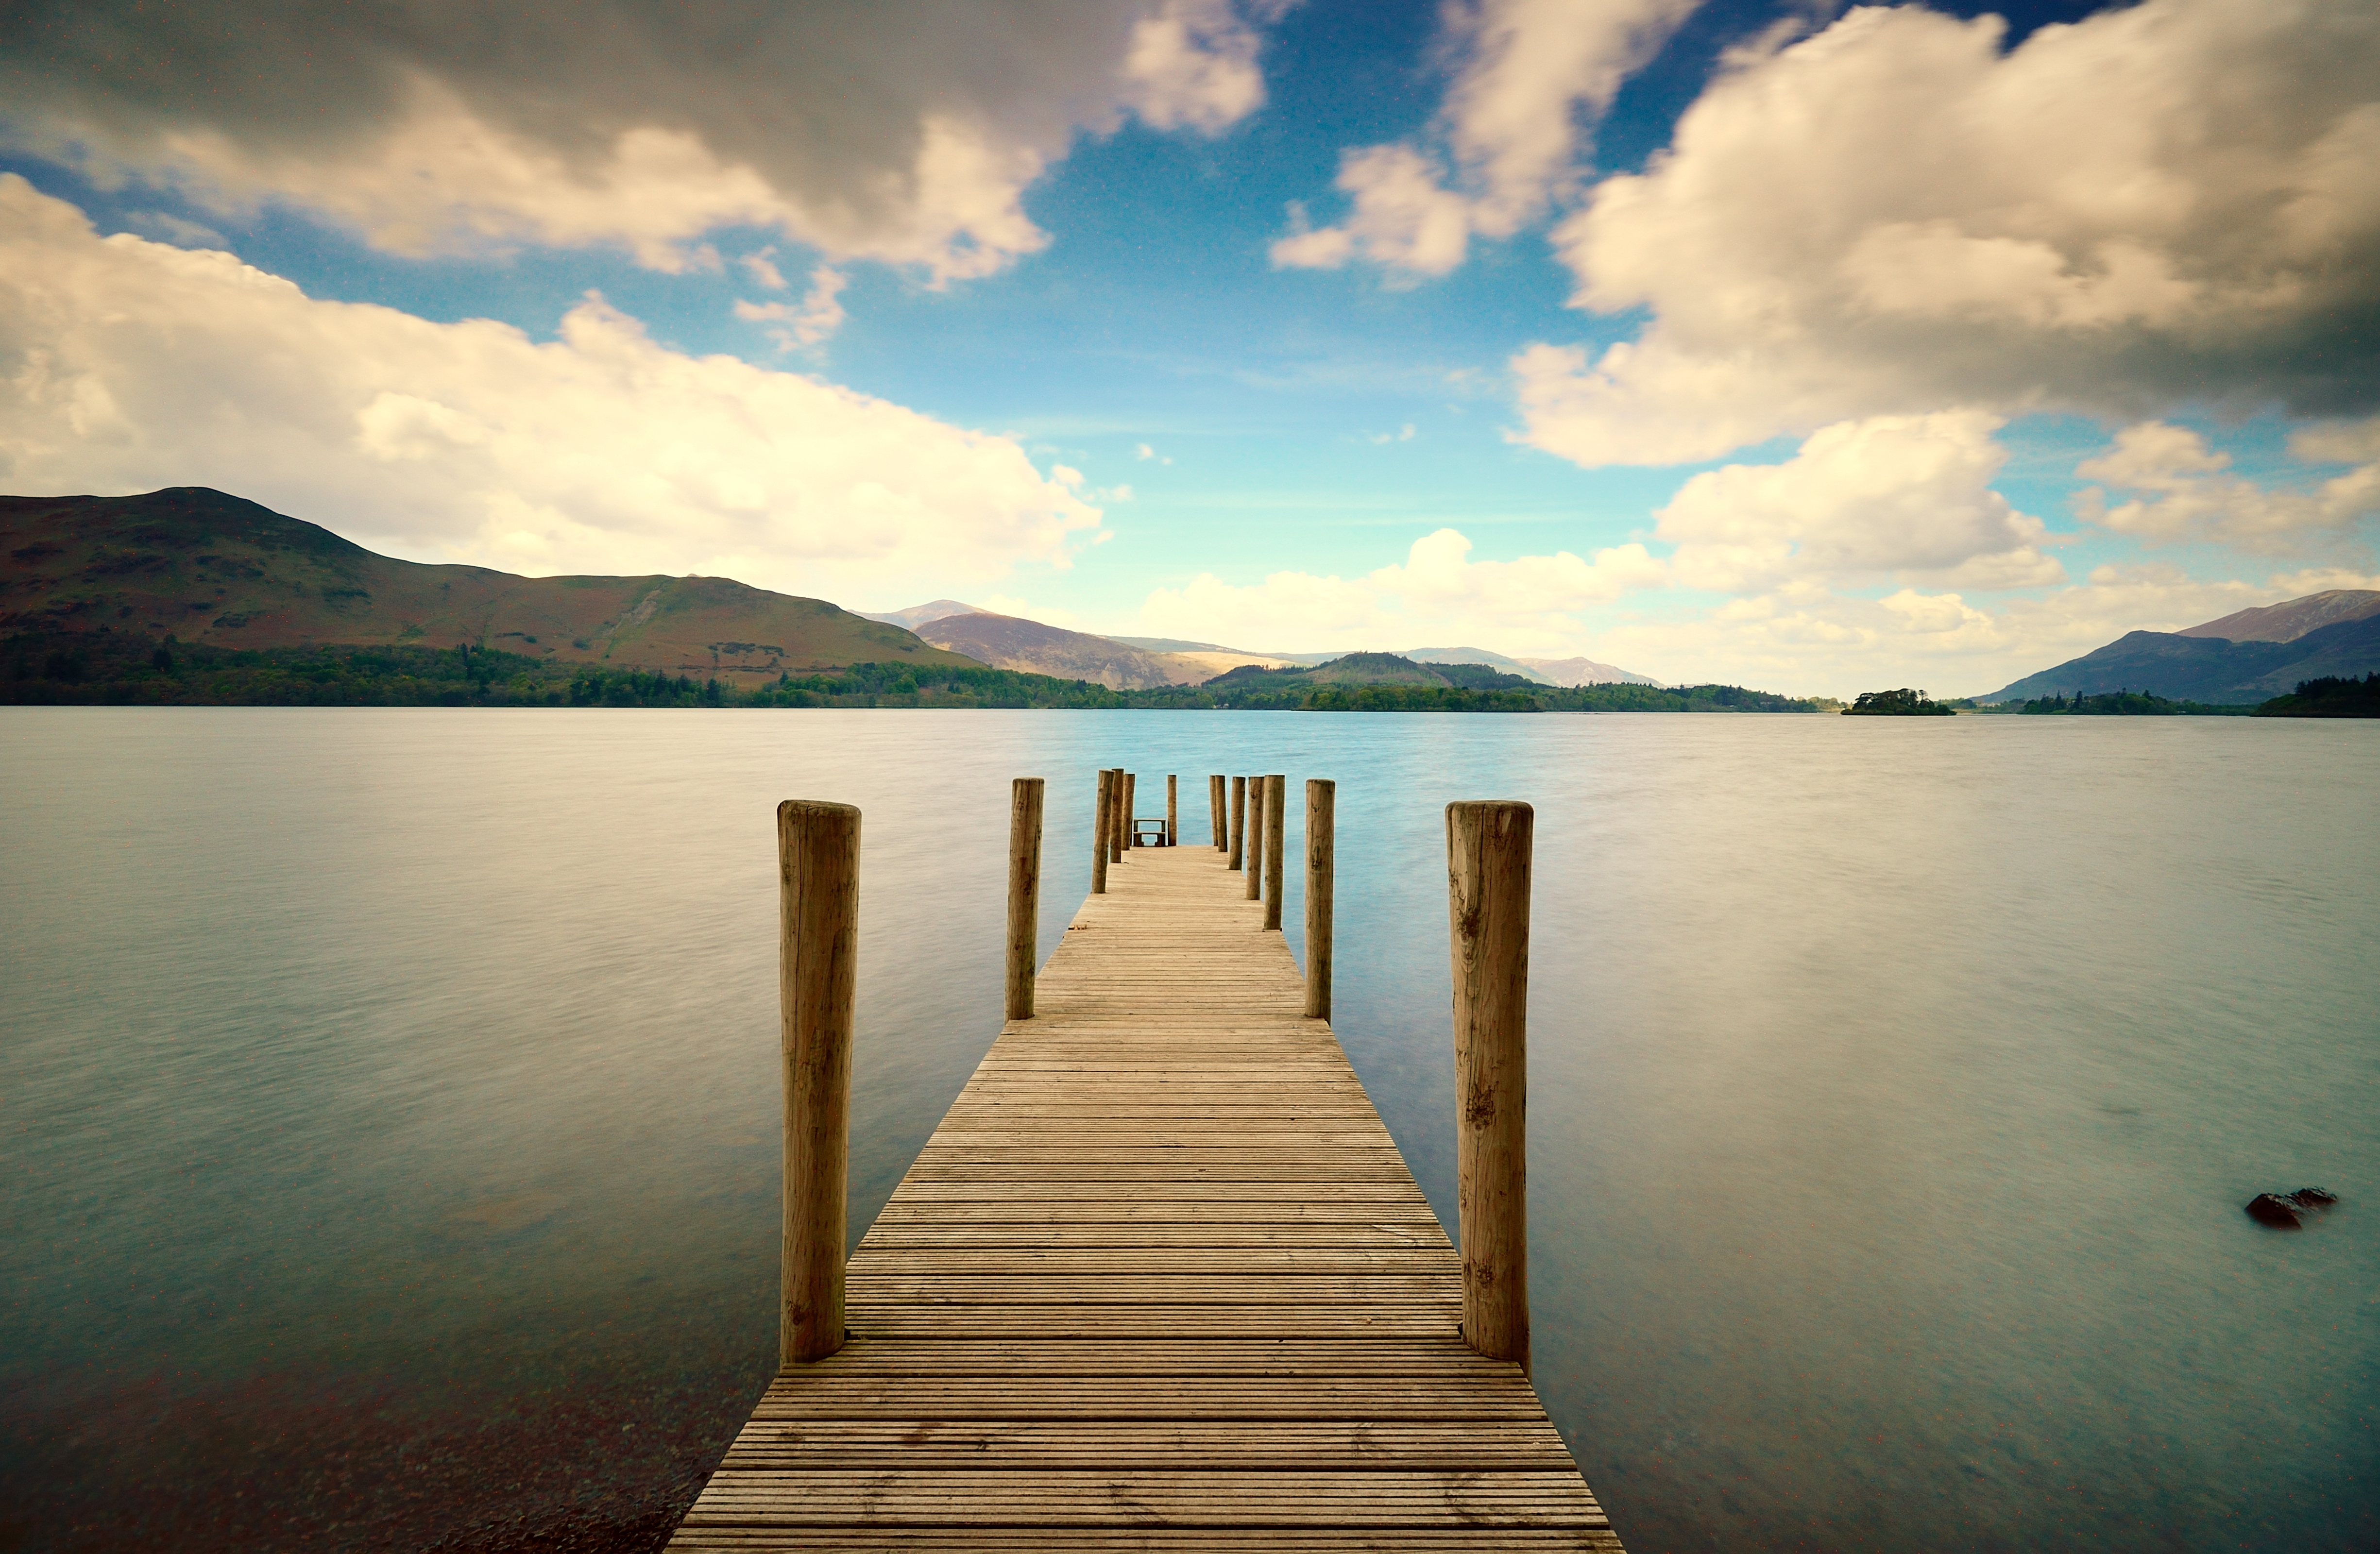 55786 download wallpaper Nature, Rivers, Sky, Mountains, Dahl, Distance, Wharf, Berth screensavers and pictures for free